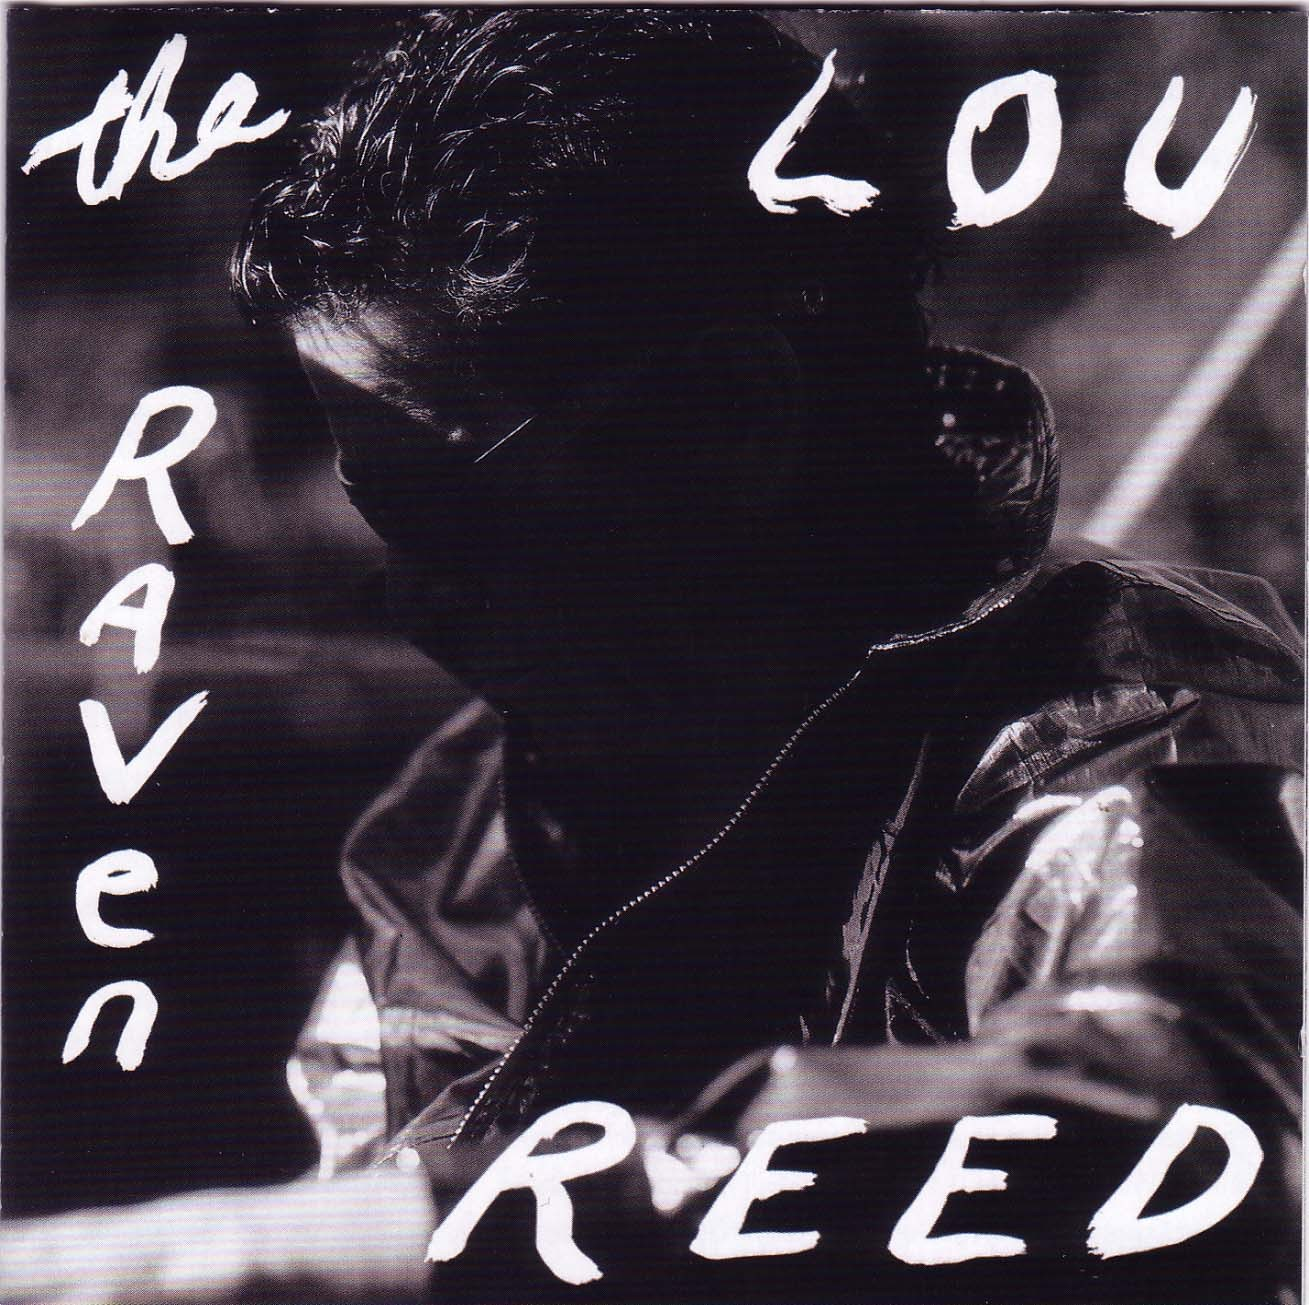 Lou Reed - The Raven (Cd 1)